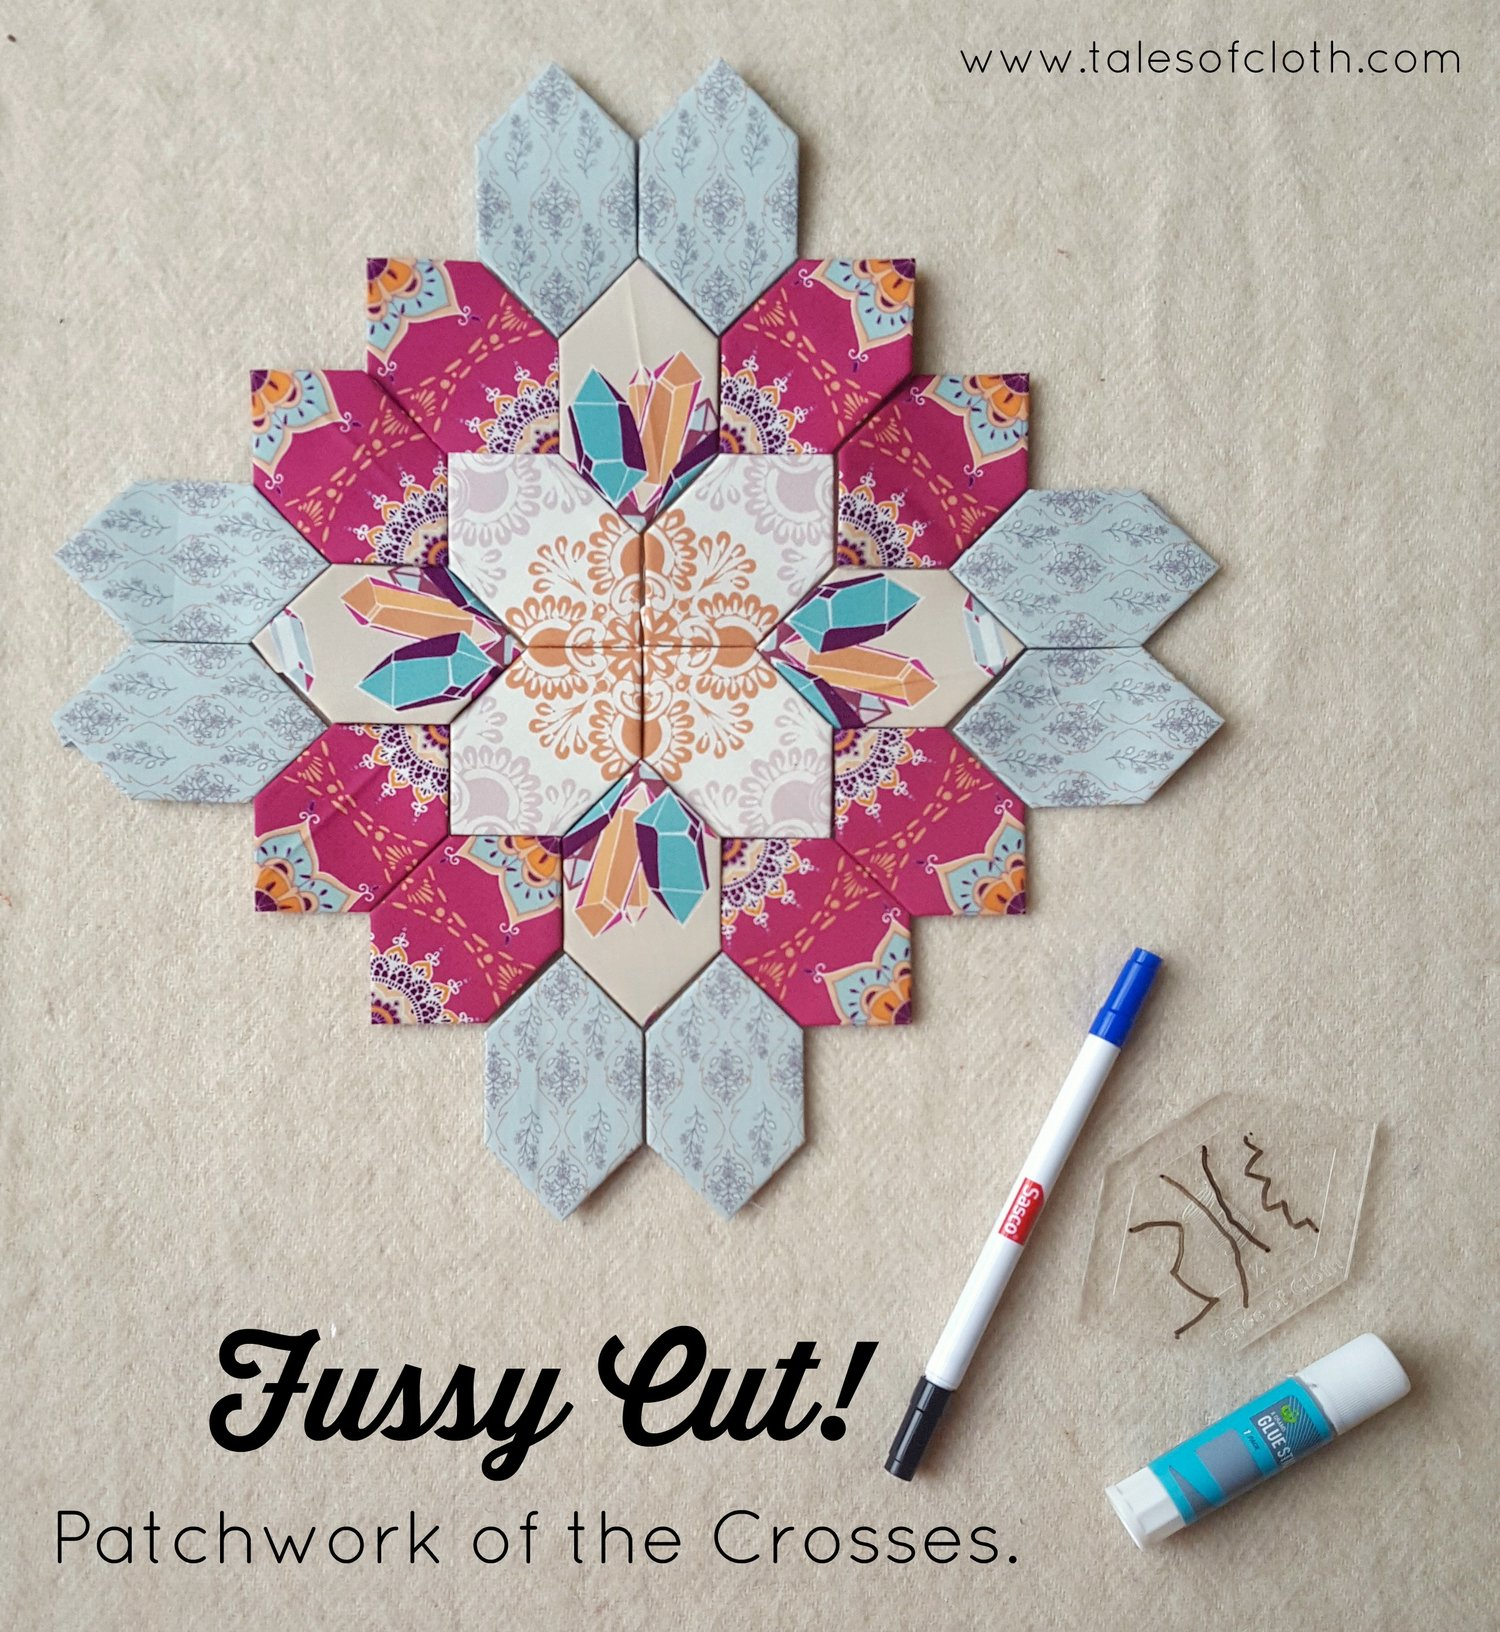 How To Fussy Cut A Lucy Boston Quilt Along Tales Of Cloth